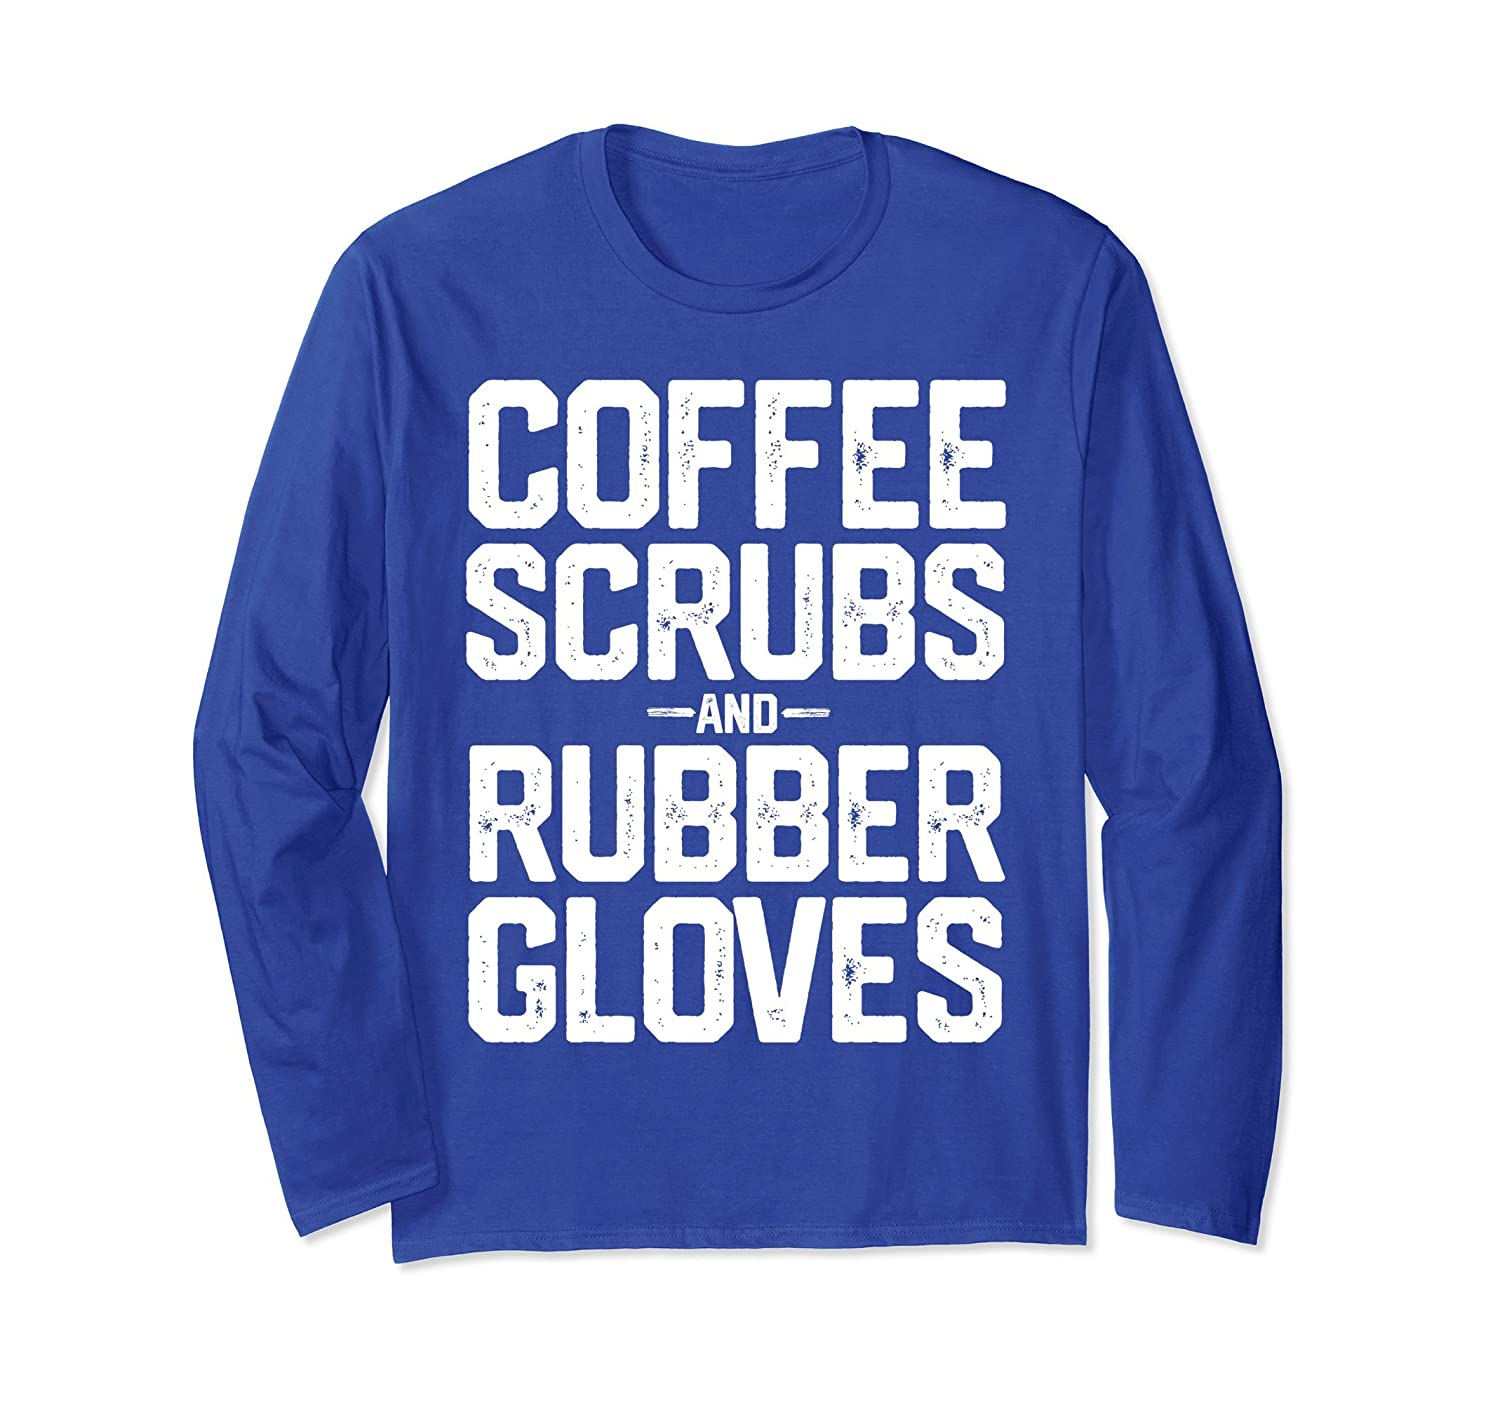 COFFEE SCRUBS AND RUBBER GLOVES Nurse Doctor RN RT EMT Shirt-alottee gift